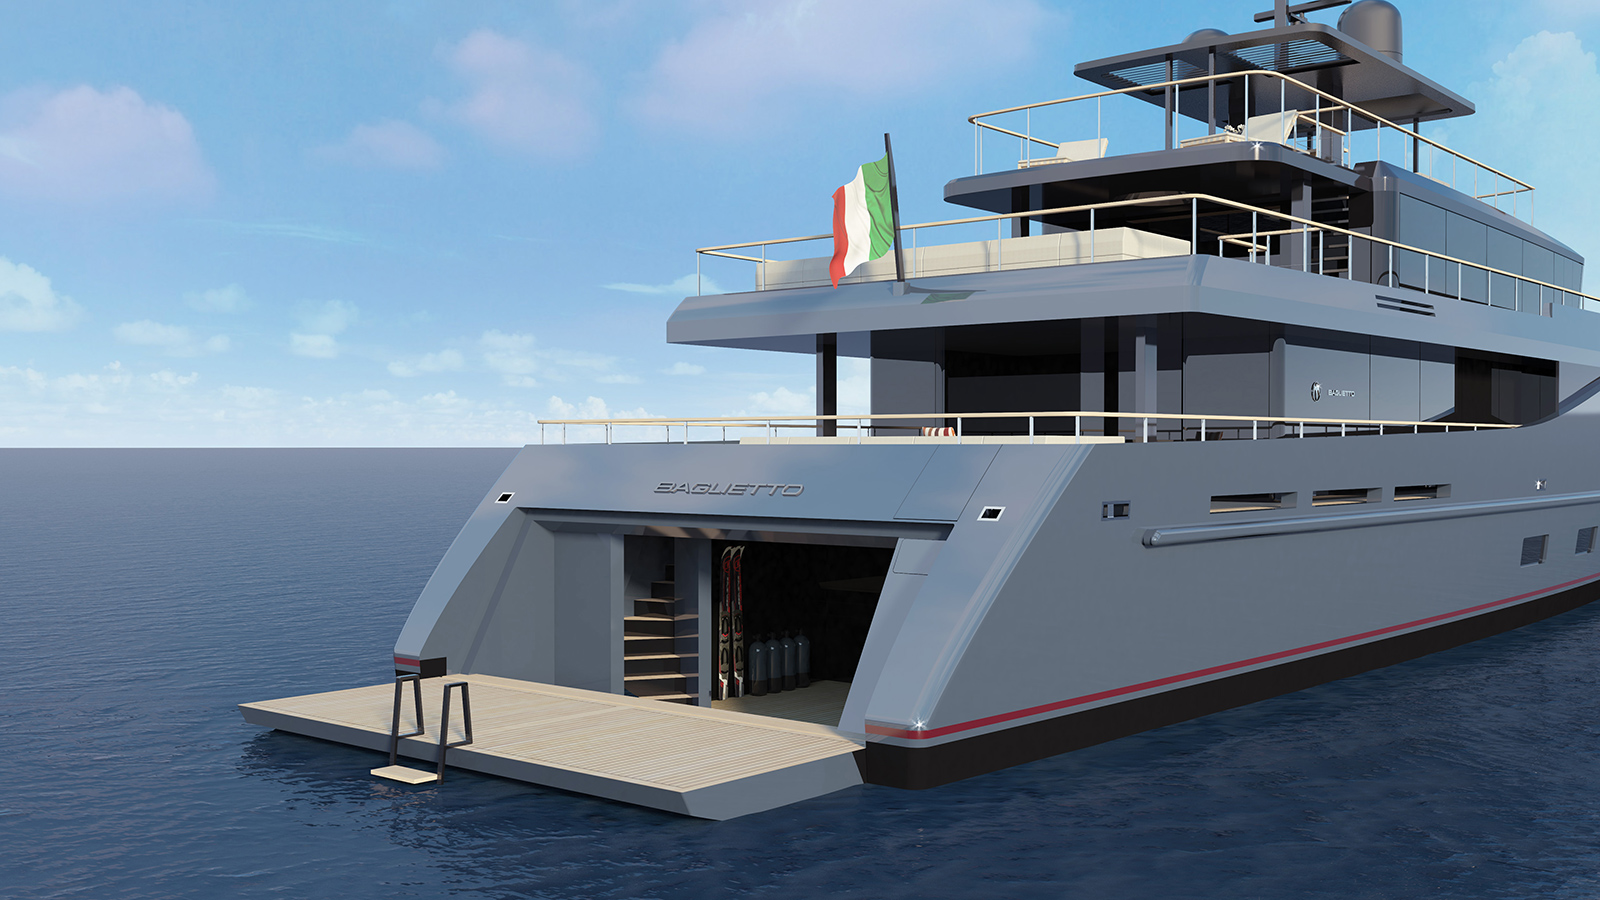 the-transom-of-the-41-metre-baglietto-v-line-by-santa-maria-magnolfi